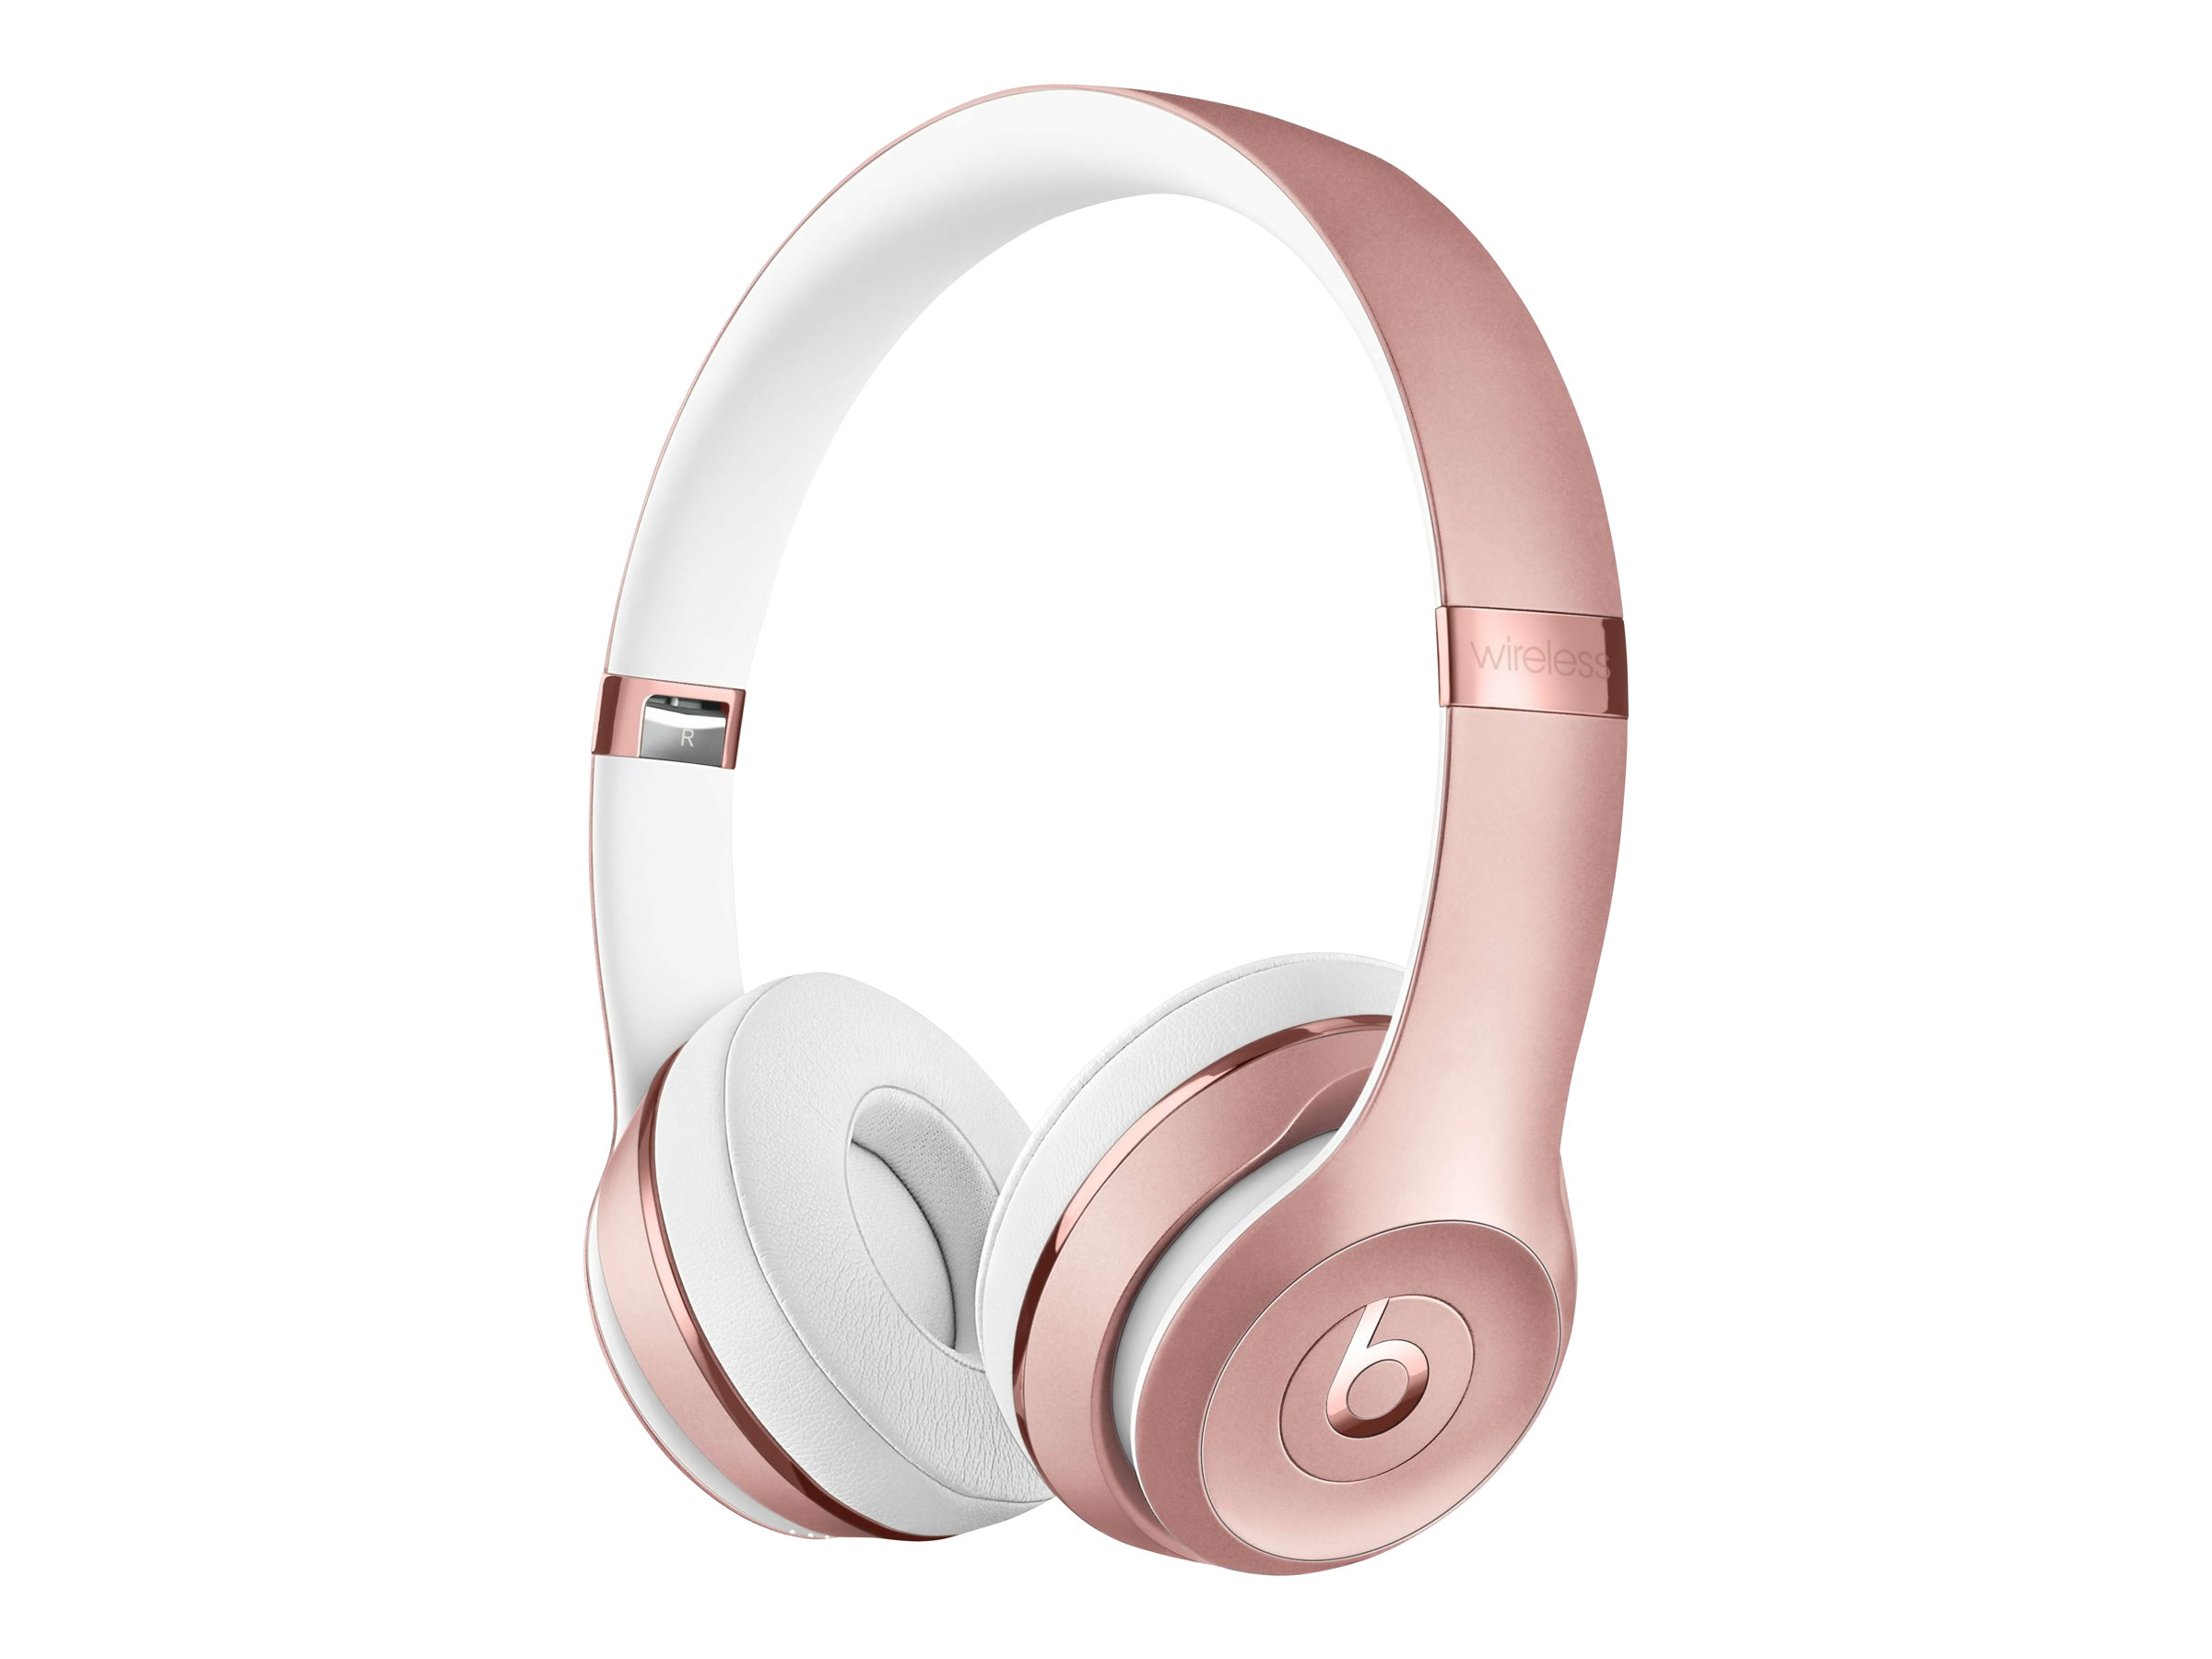 Beats Solo3 - Kopfhörer mit Mikrofon - On-Ear - Bluetooth - kabellos - Rosegold